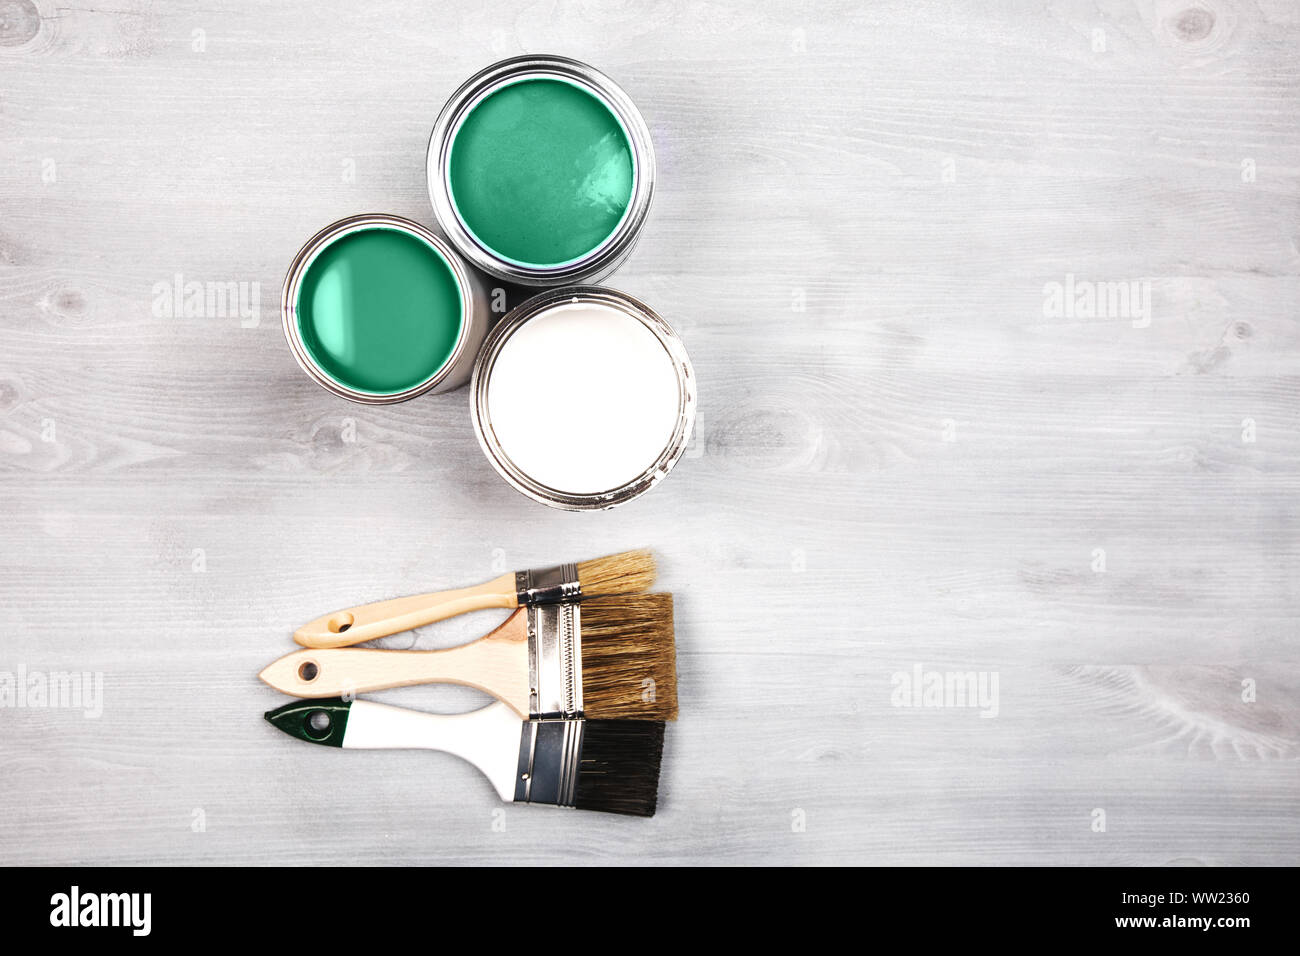 Green paint cans and colored brushes on white wooden background Stock Photo